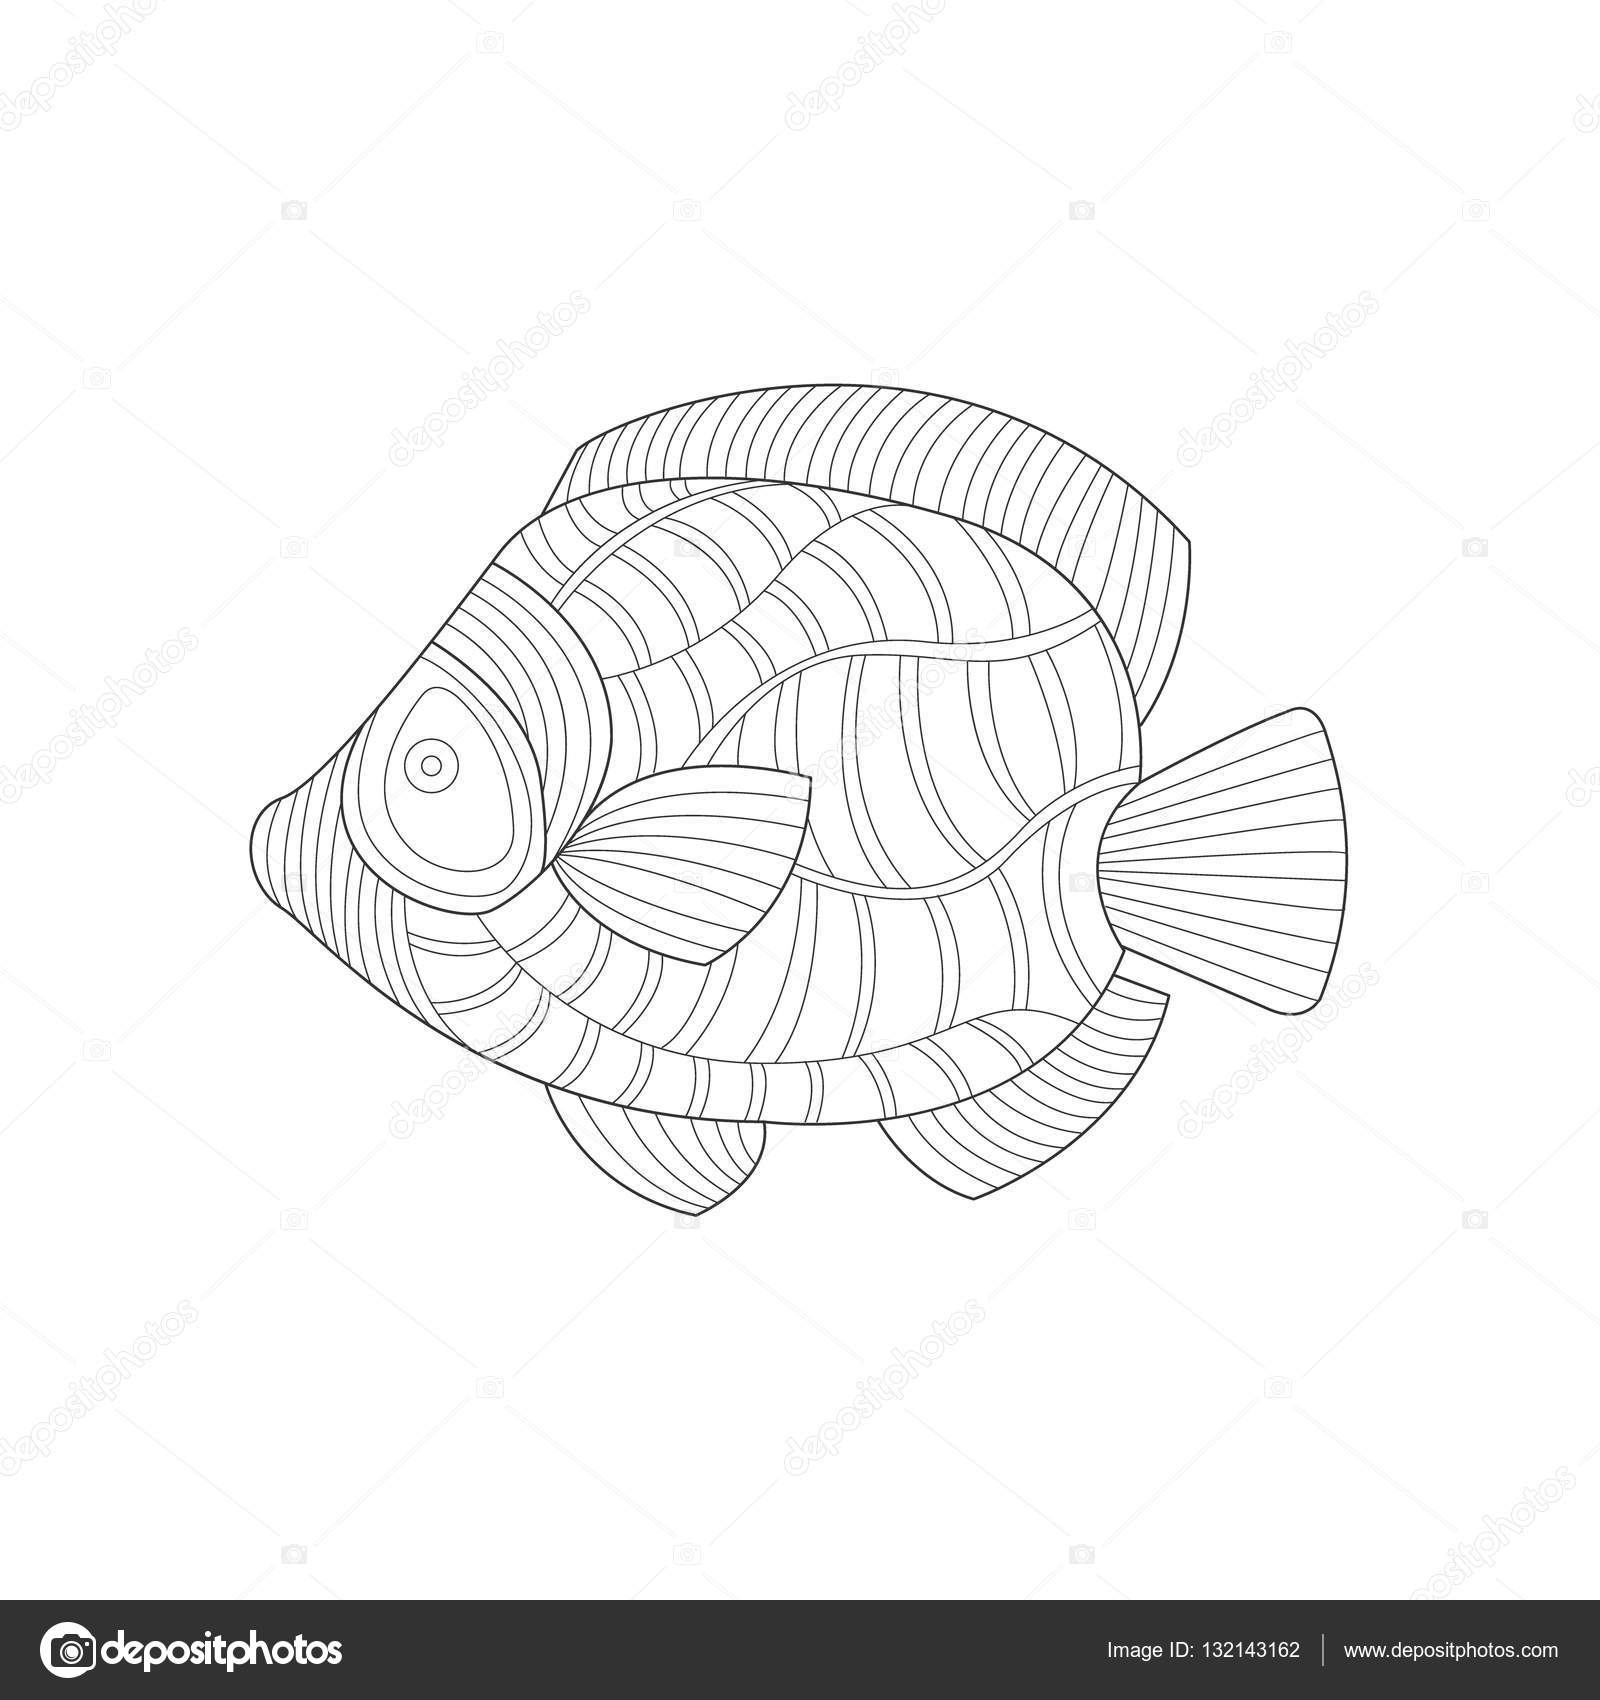 Angel Fish Sea Underwater Nature Adult Black And White Zentangle Coloring Book Illustration Stock Vector